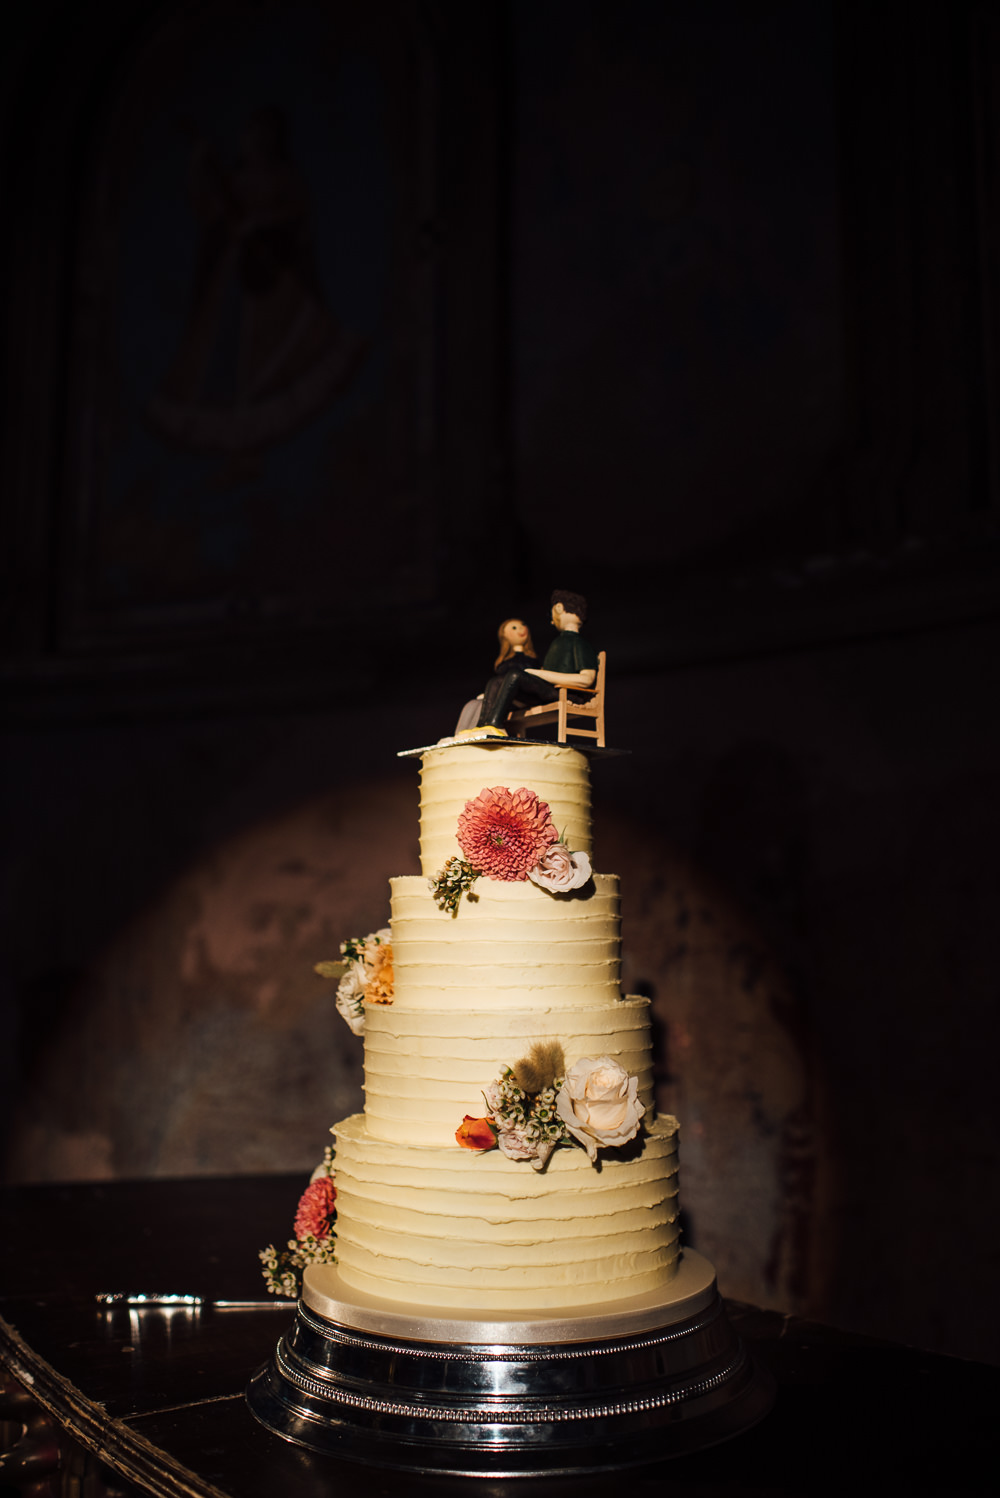 Tall Buttercream Cake Flowers Floral St Paul's Cathedral Wedding The Shannons Photography